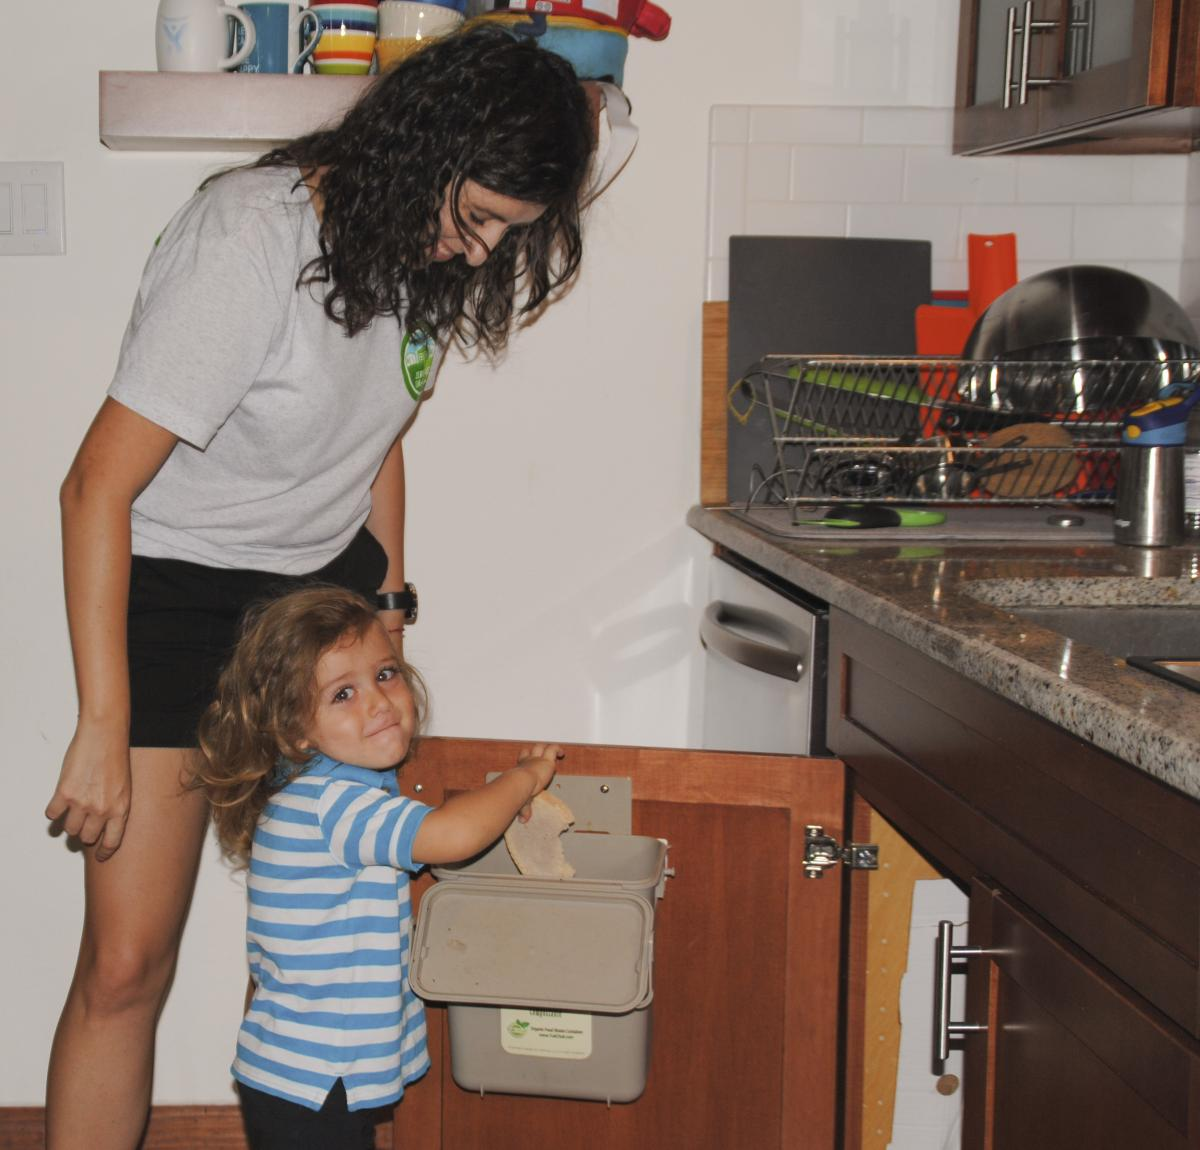 Photo of Ellie with her son composting in the kitchen